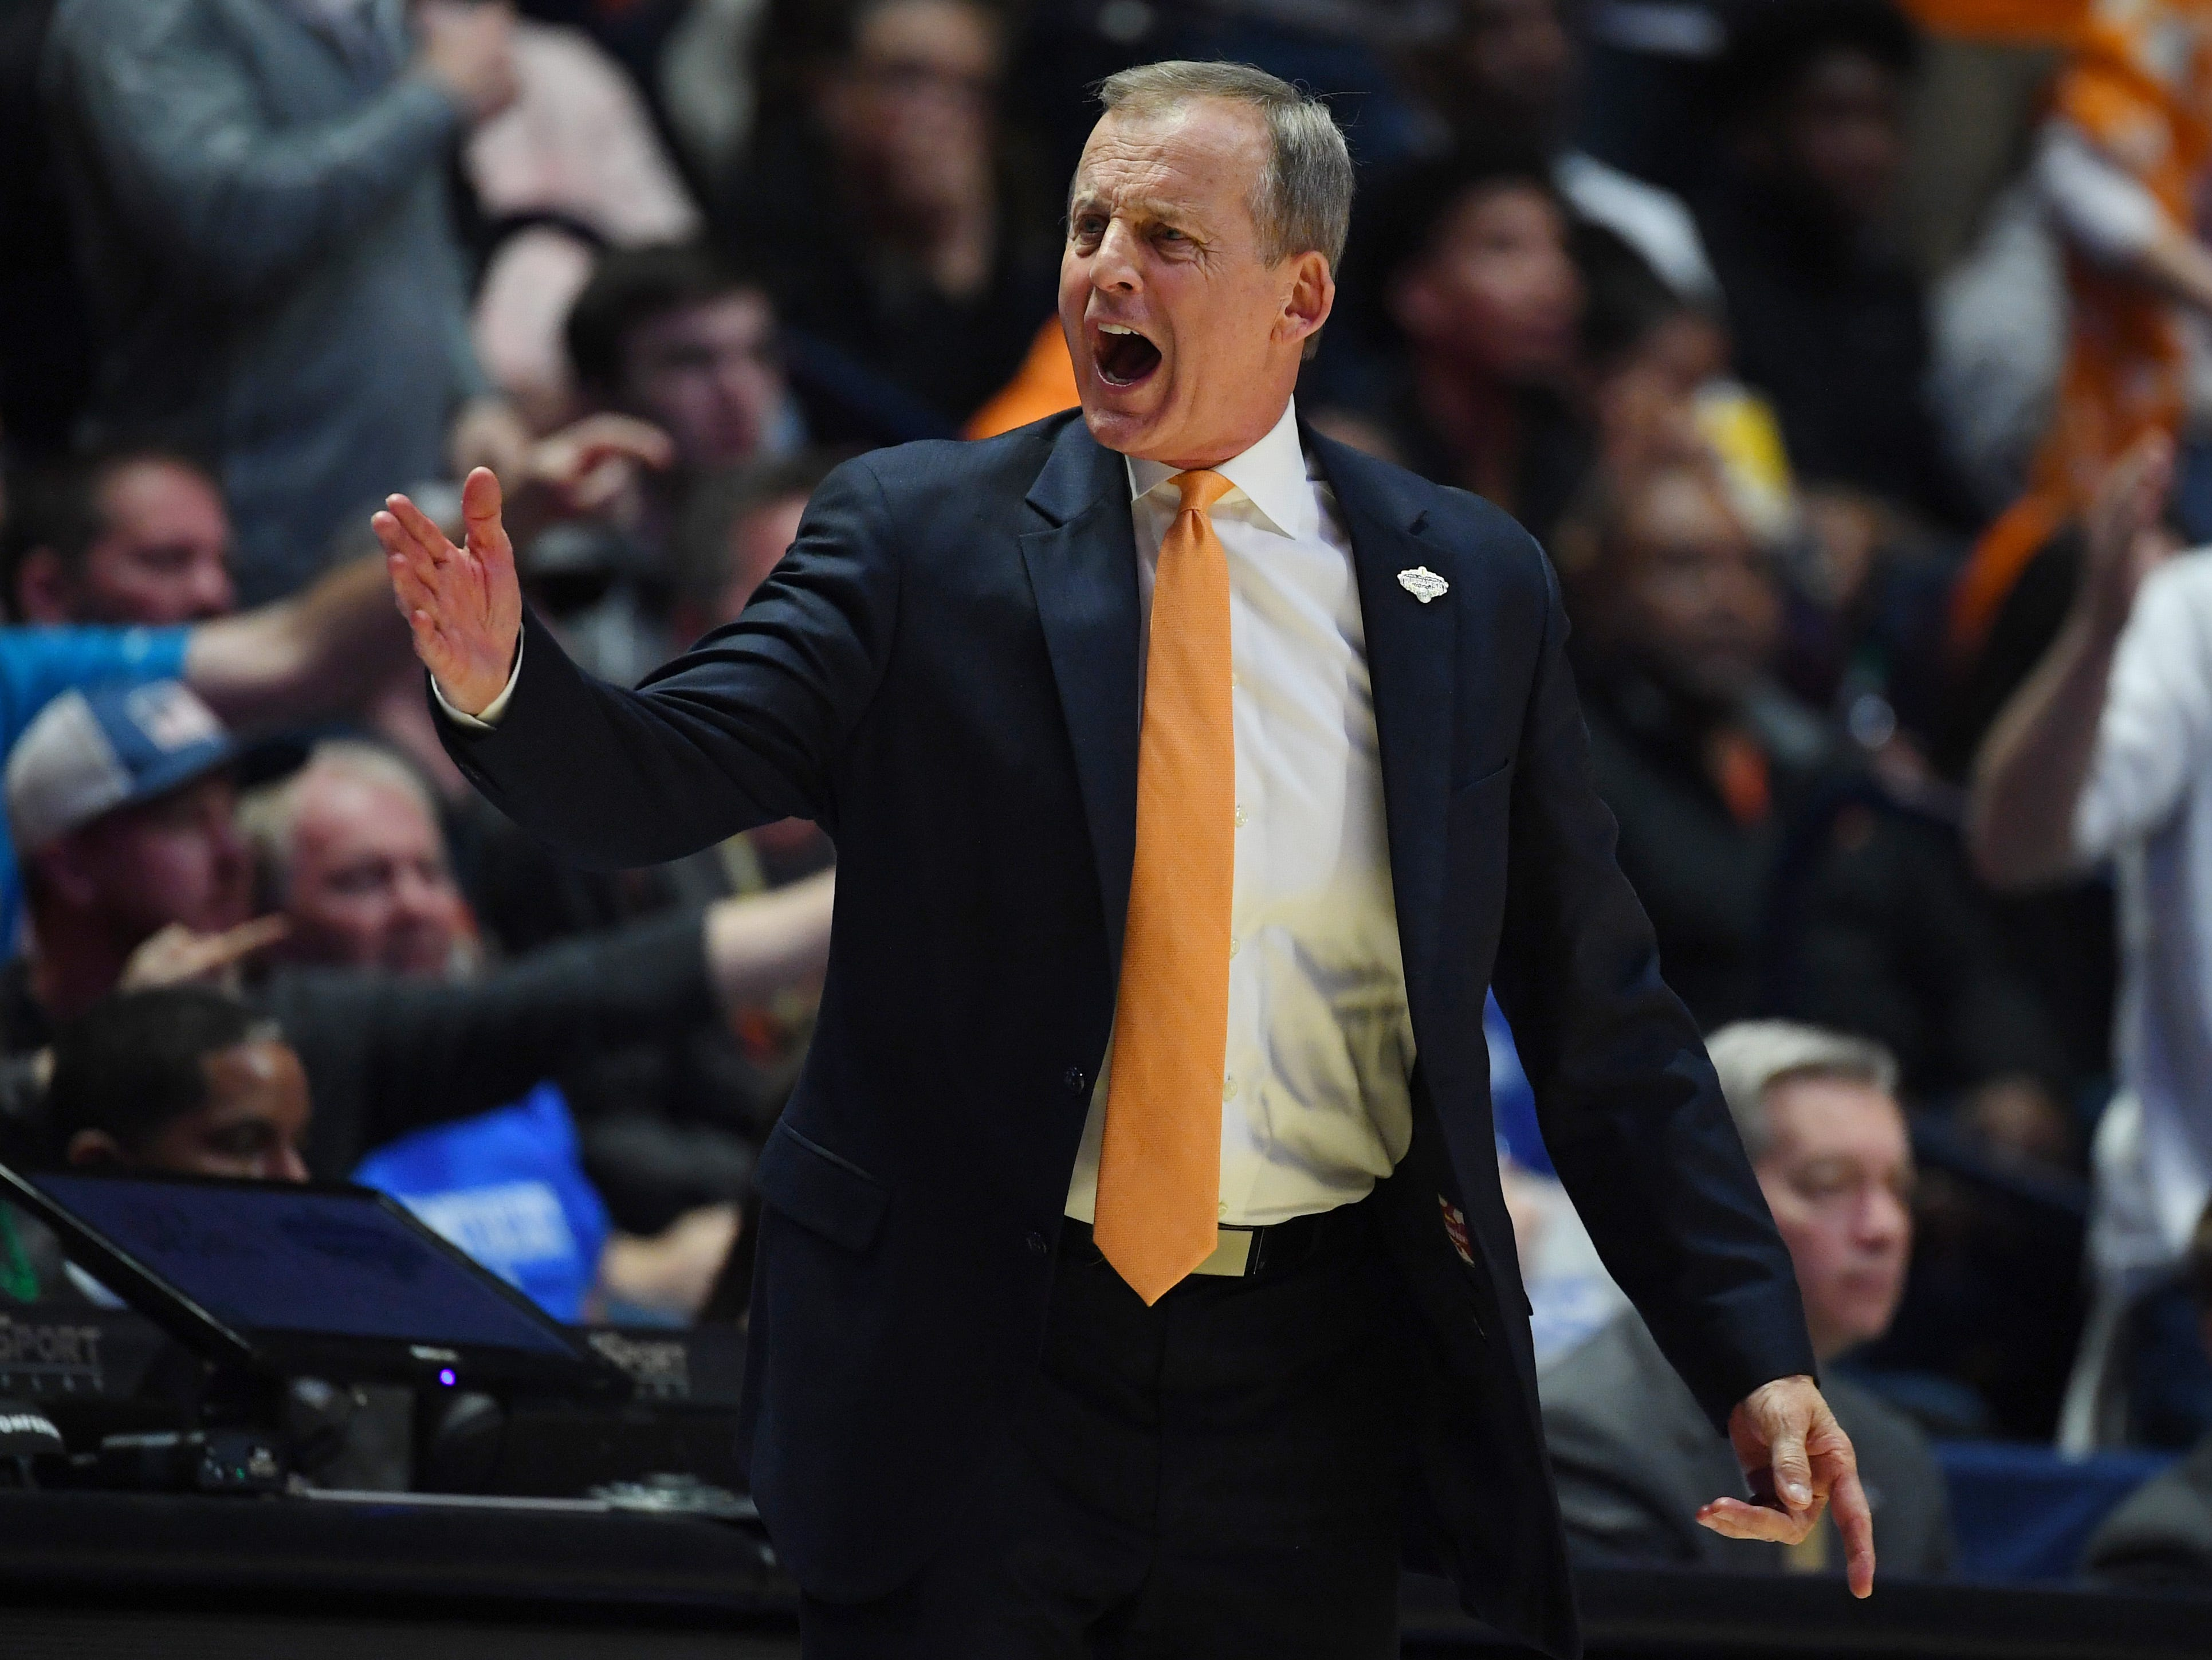 Mar 17, 2019; Nashville, TN, USA; Tennessee Volunteers head coach Rick Barnes during the second half against the Auburn Tigers in the SEC conference tournament championship game at Bridgestone Arena. Mandatory Credit: Christopher Hanewinckel-USA TODAY Sports